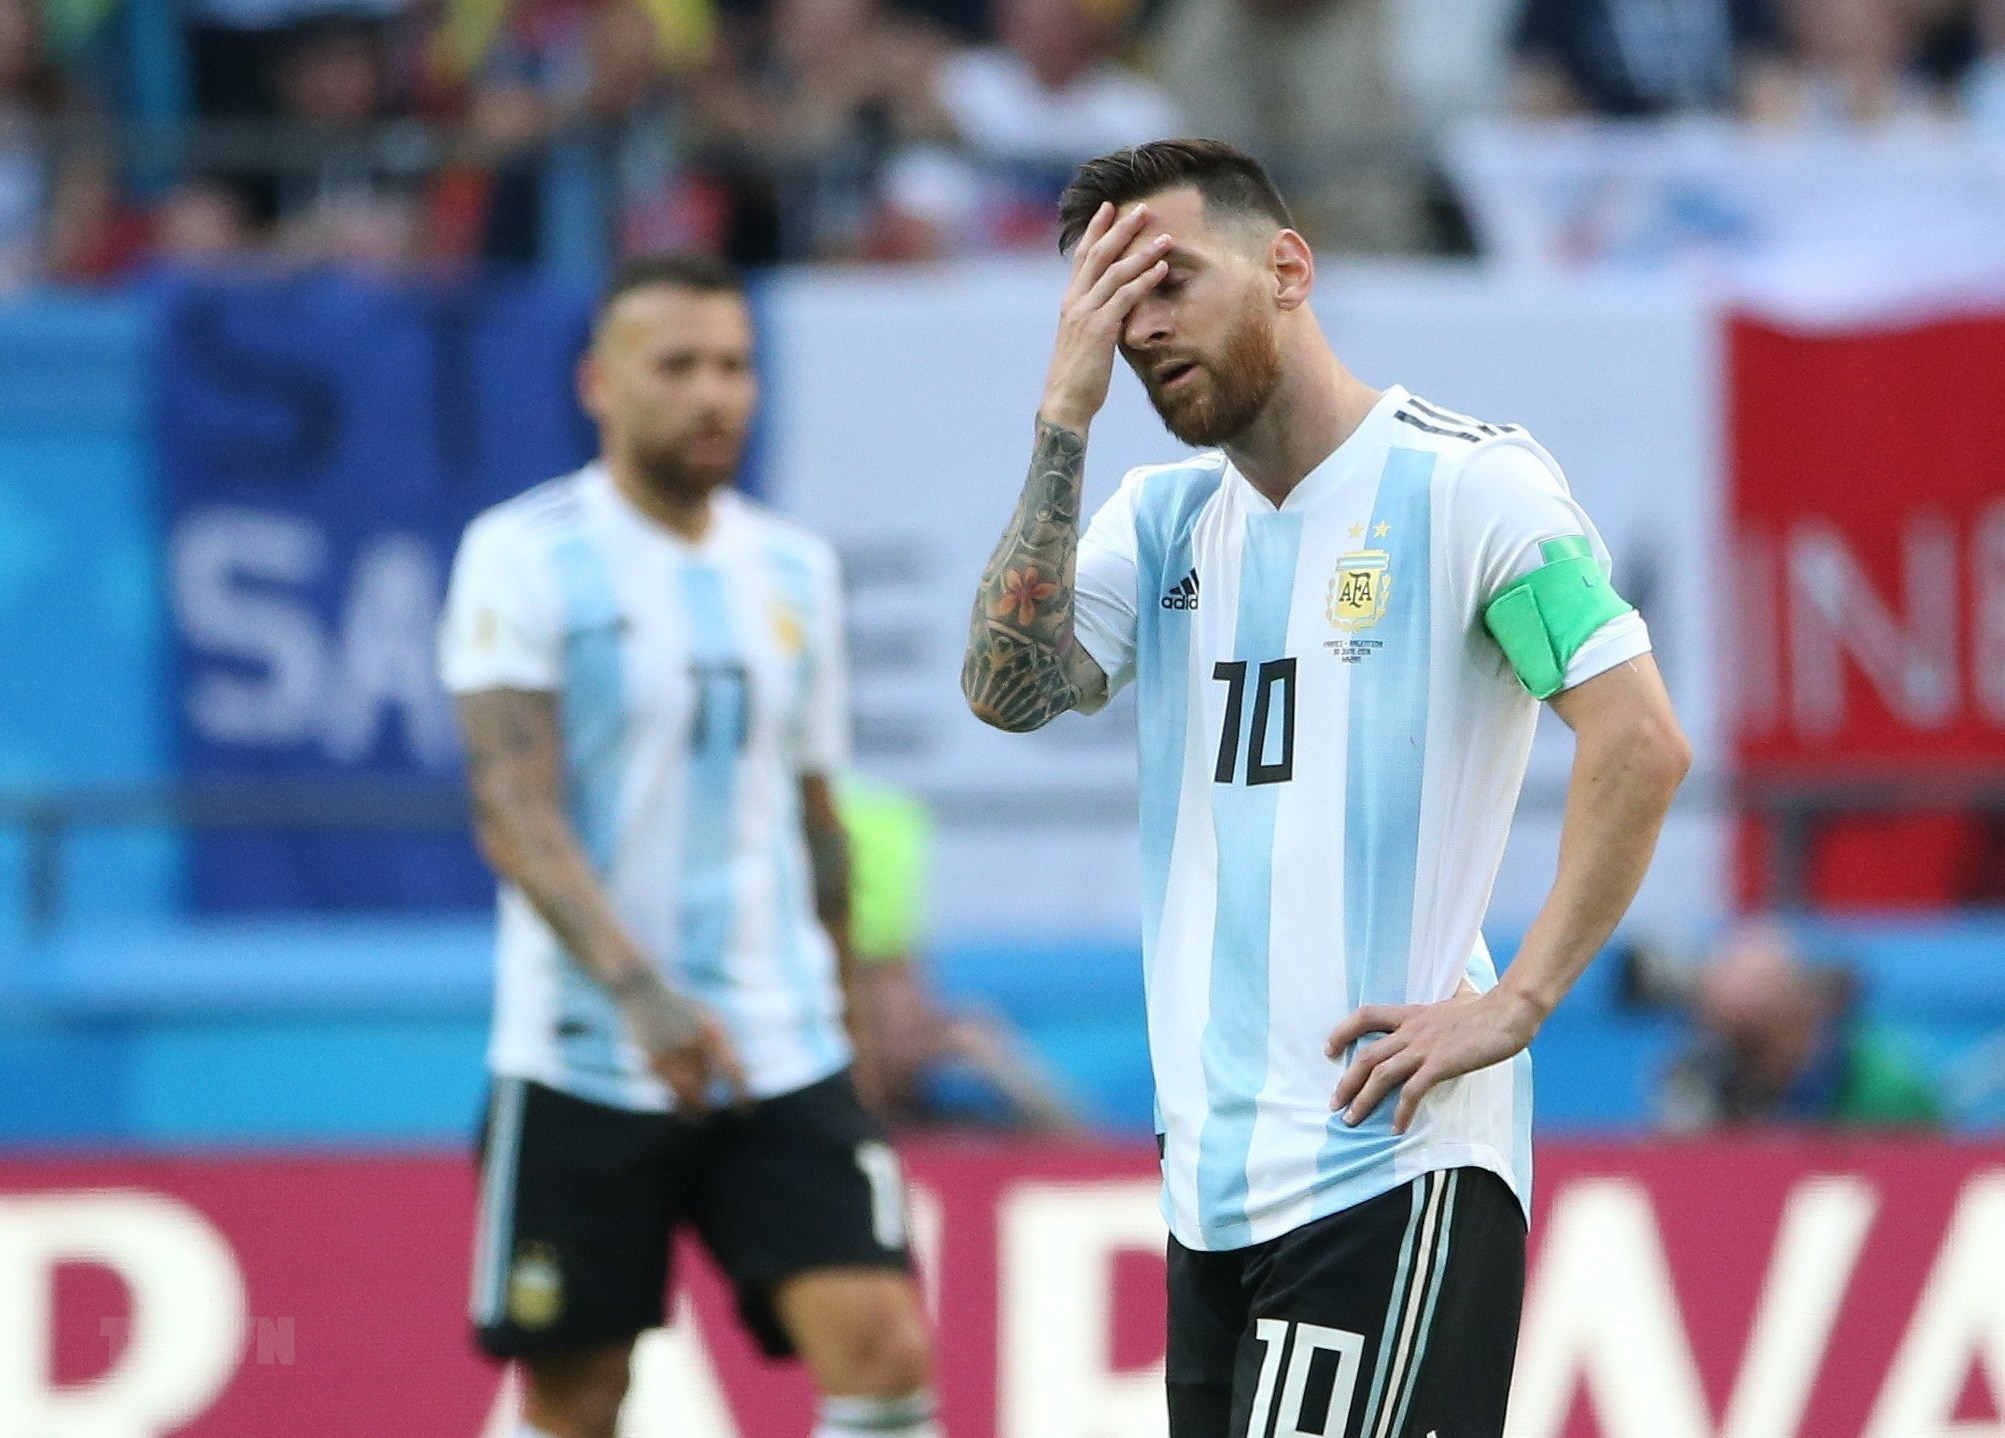 Nhung lan gay that vong cua Lionel Messi trong mau ao Argentina hinh anh 1